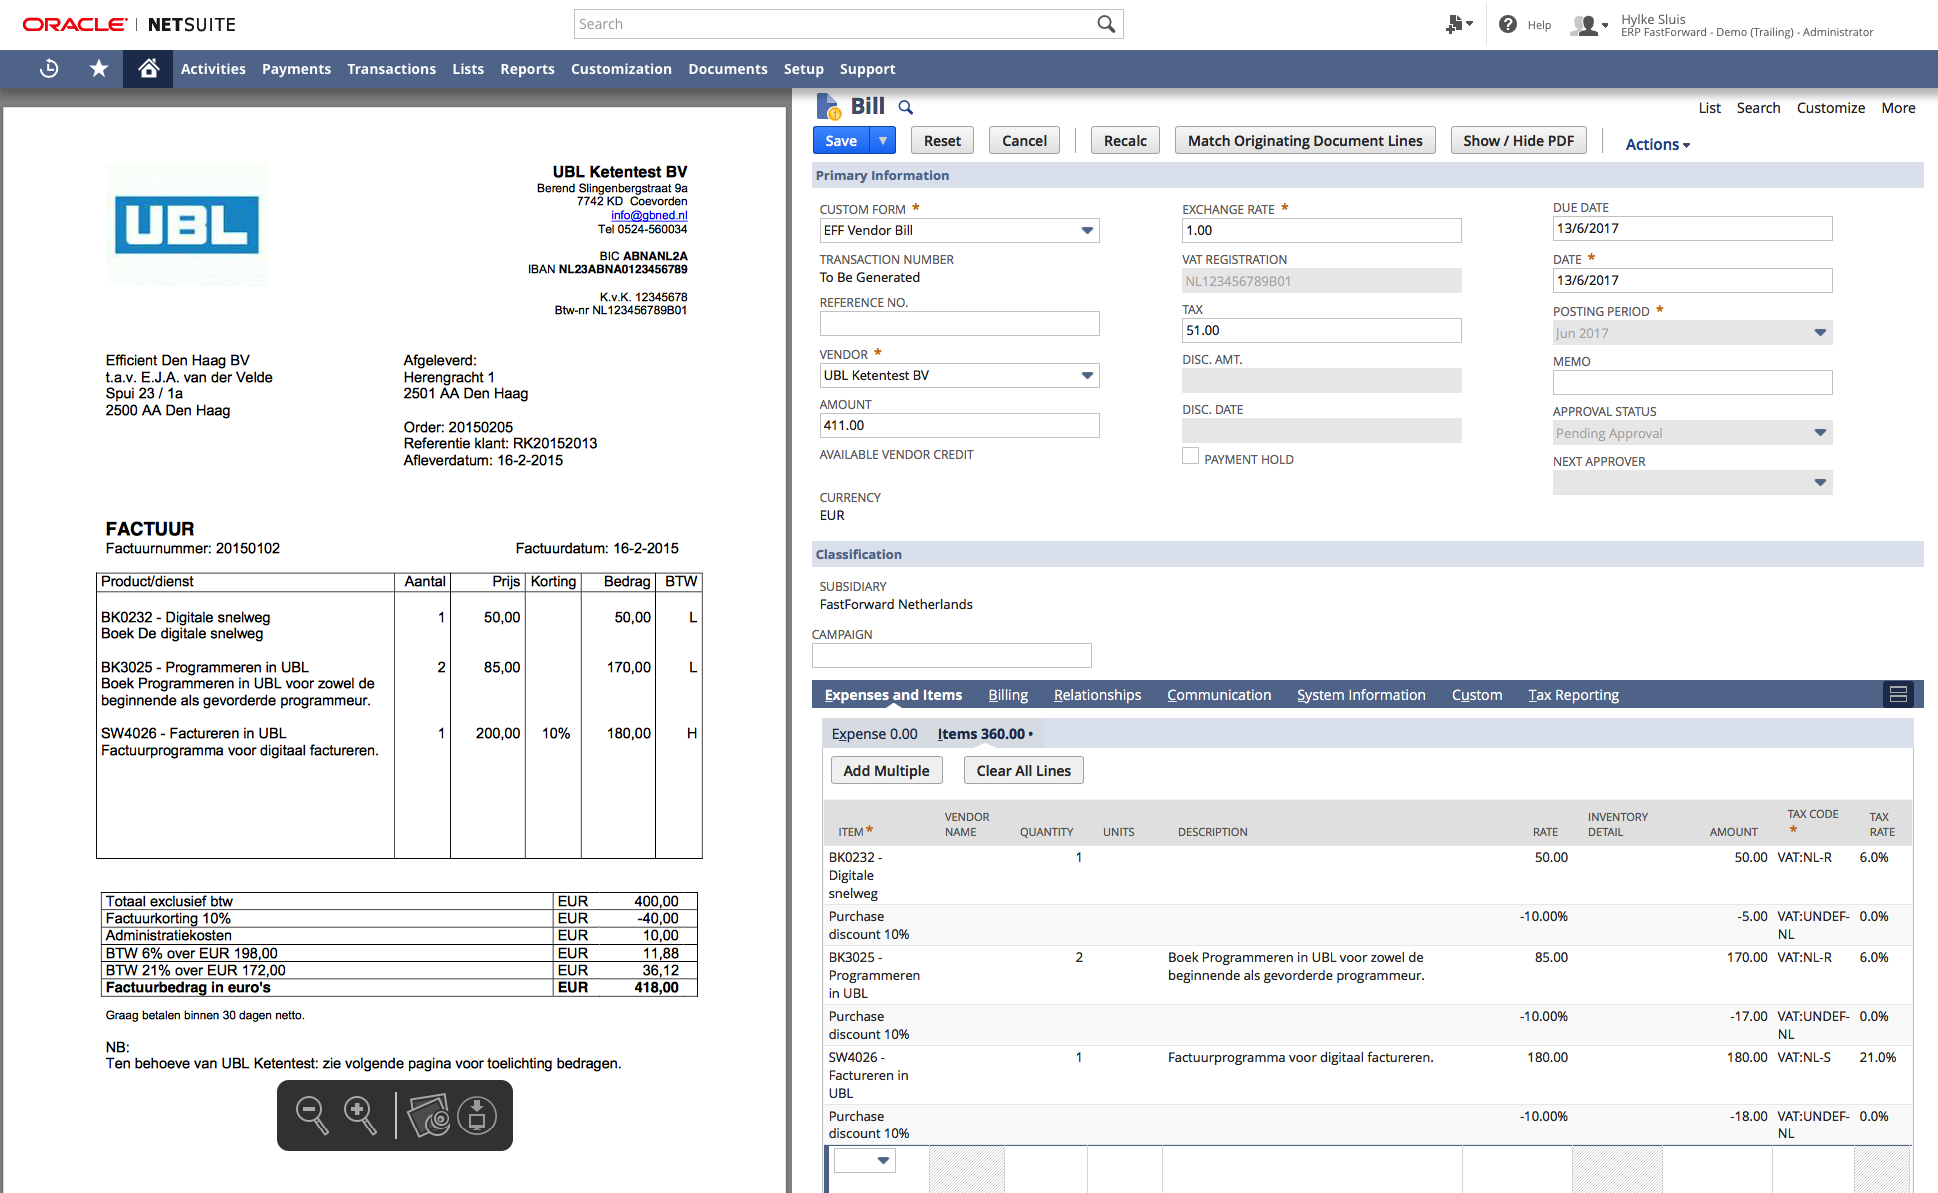 Users, Approvers and Auditors can view and manage transactions via split-screen.